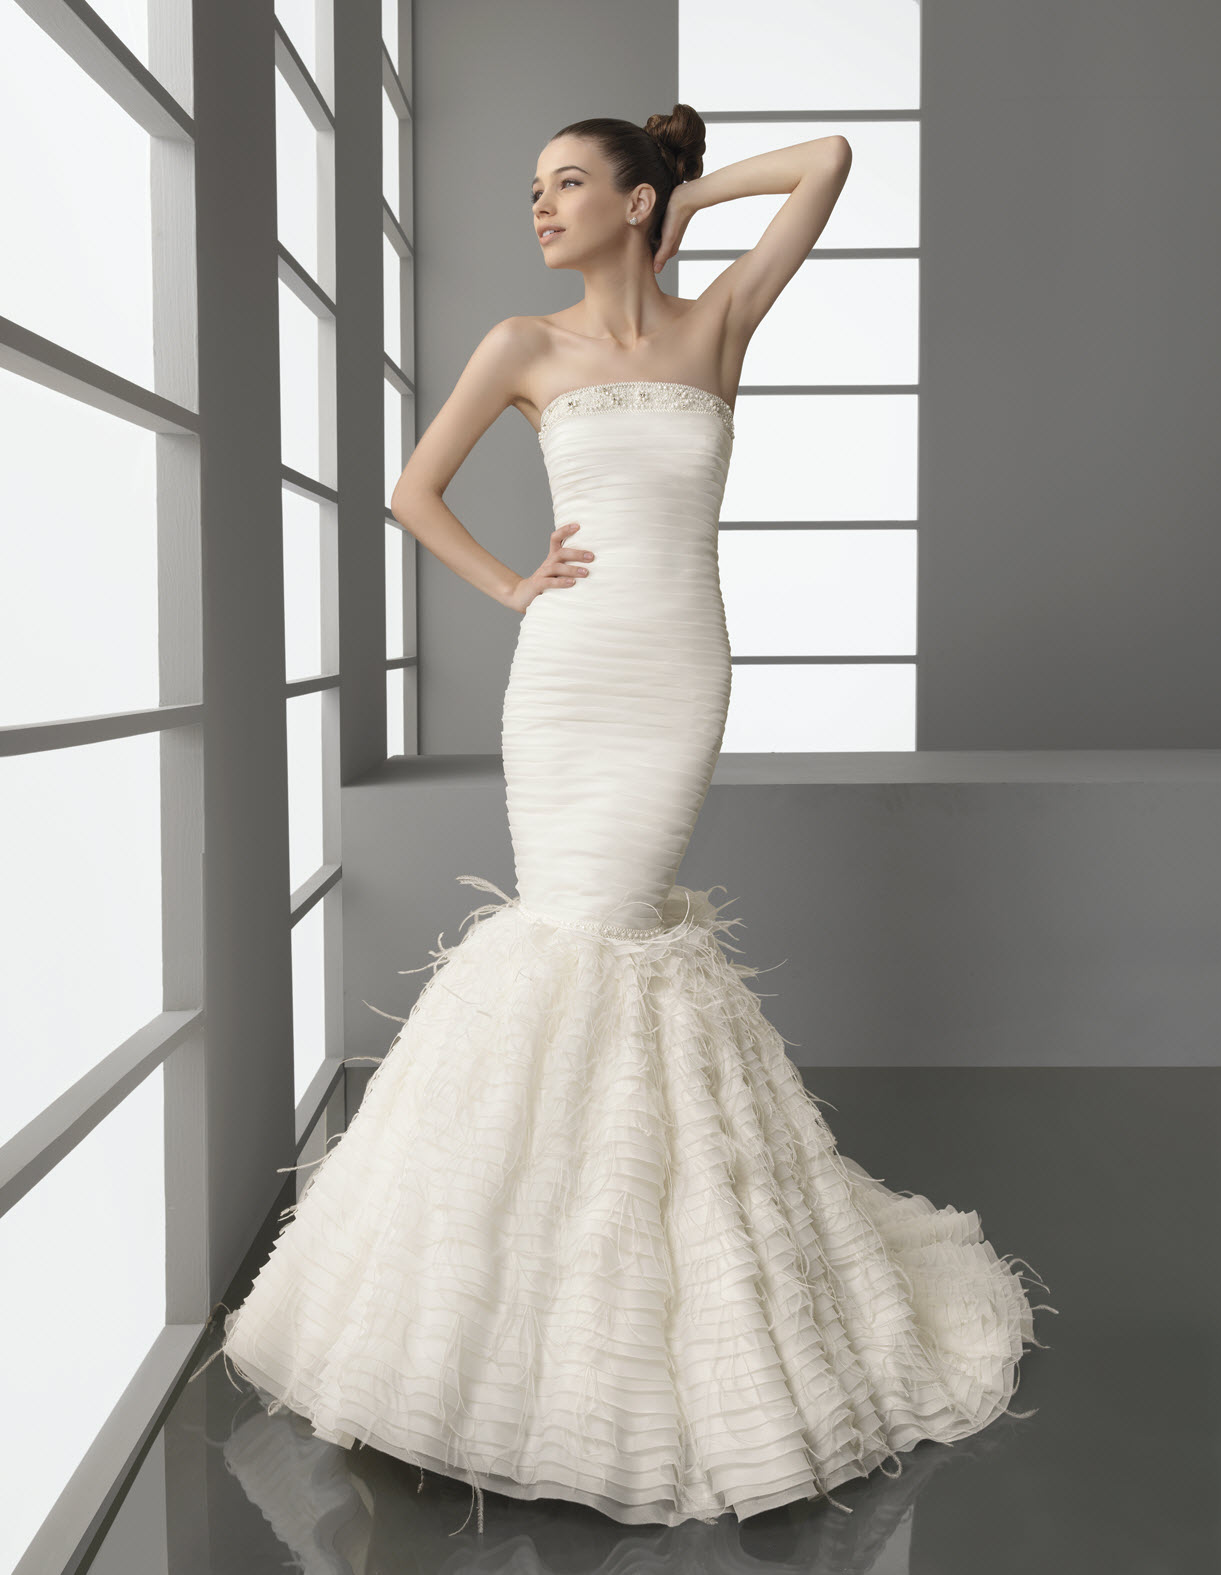 Strapless drop waist mermaid wedding dress with feather